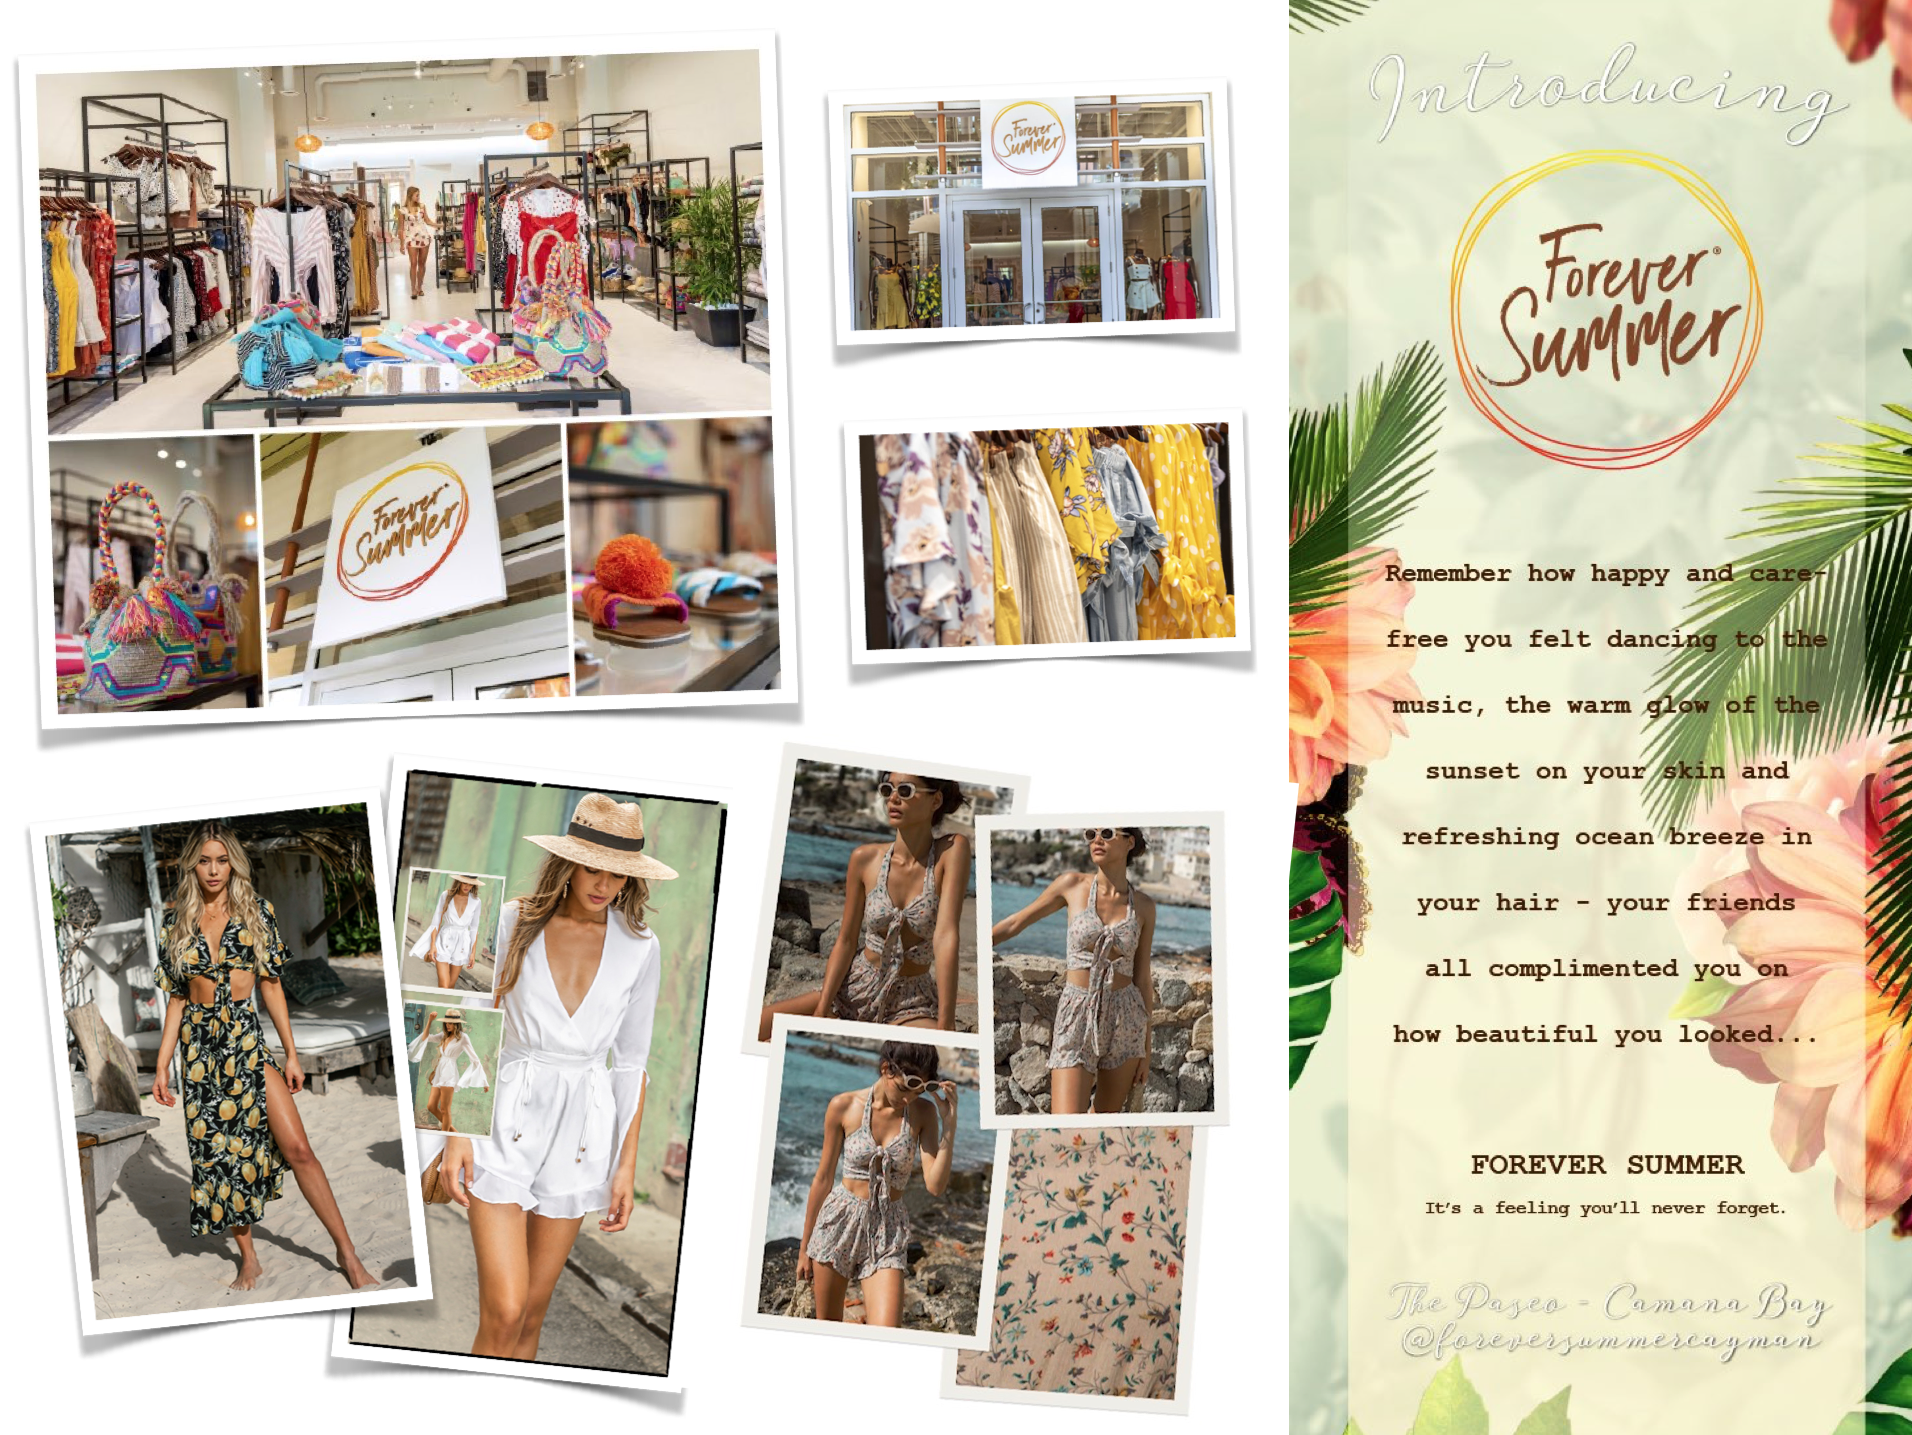 Introducing our newest retail concept - FOREVER SUMMER  To find out more visit www.ForeverSummer.com